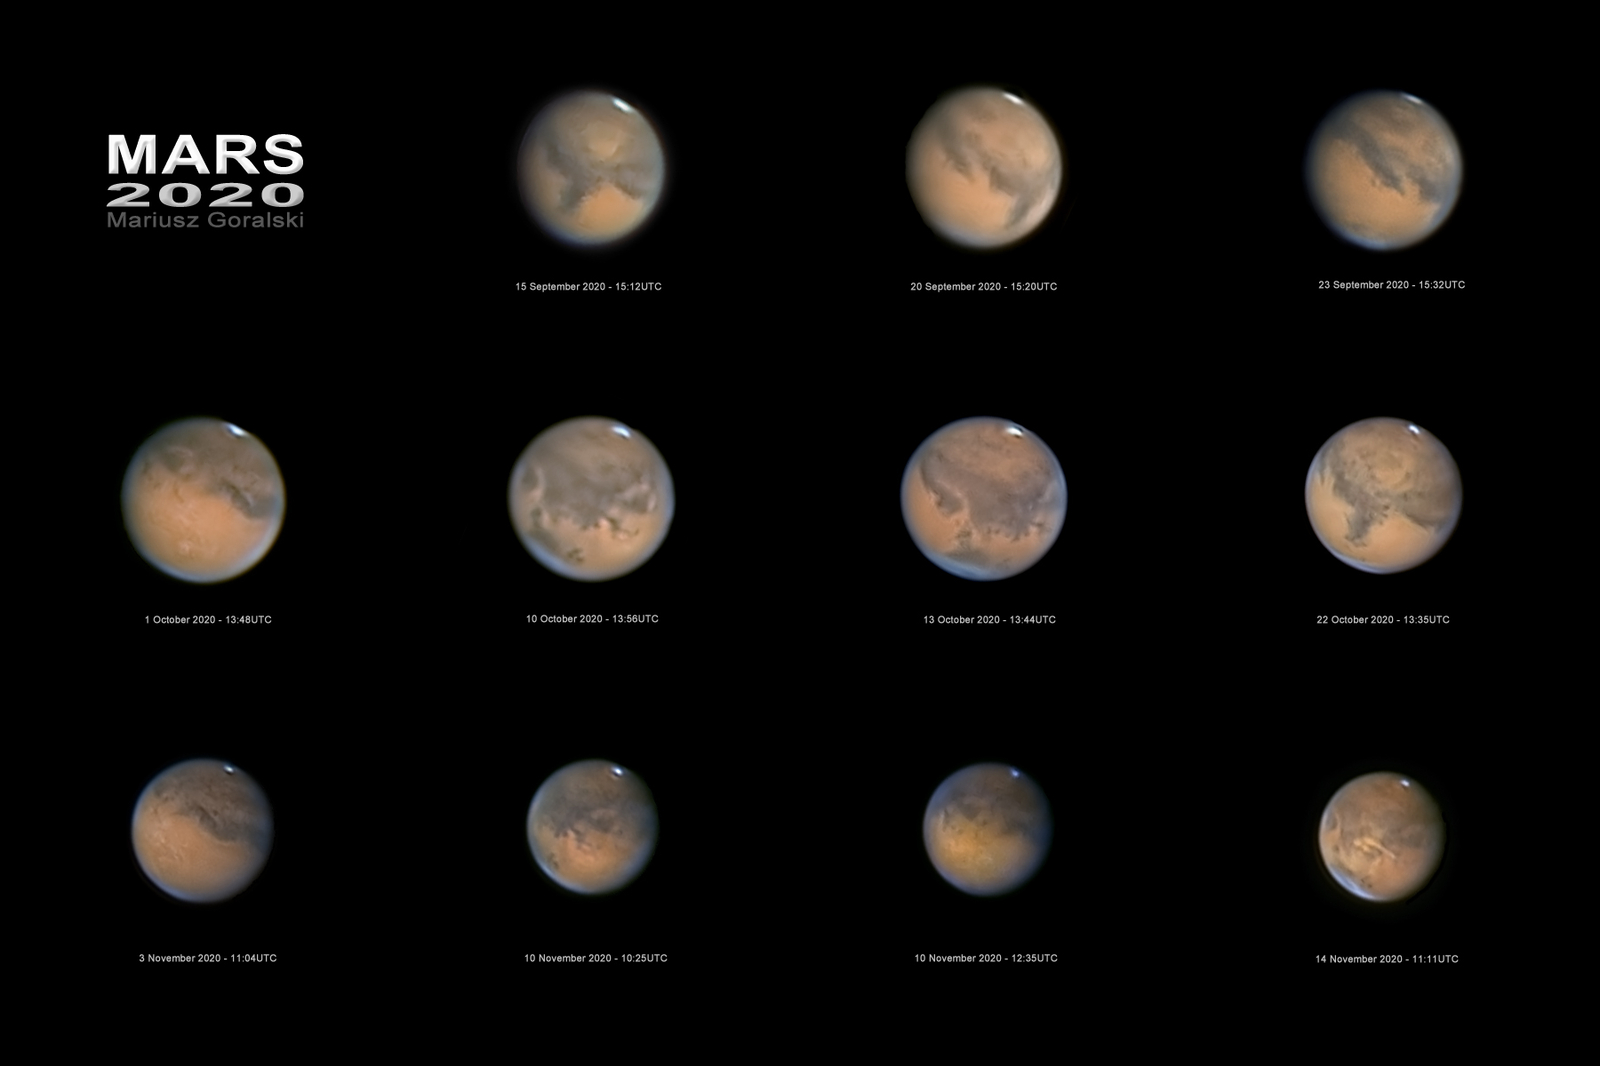 Mars Collection 2020